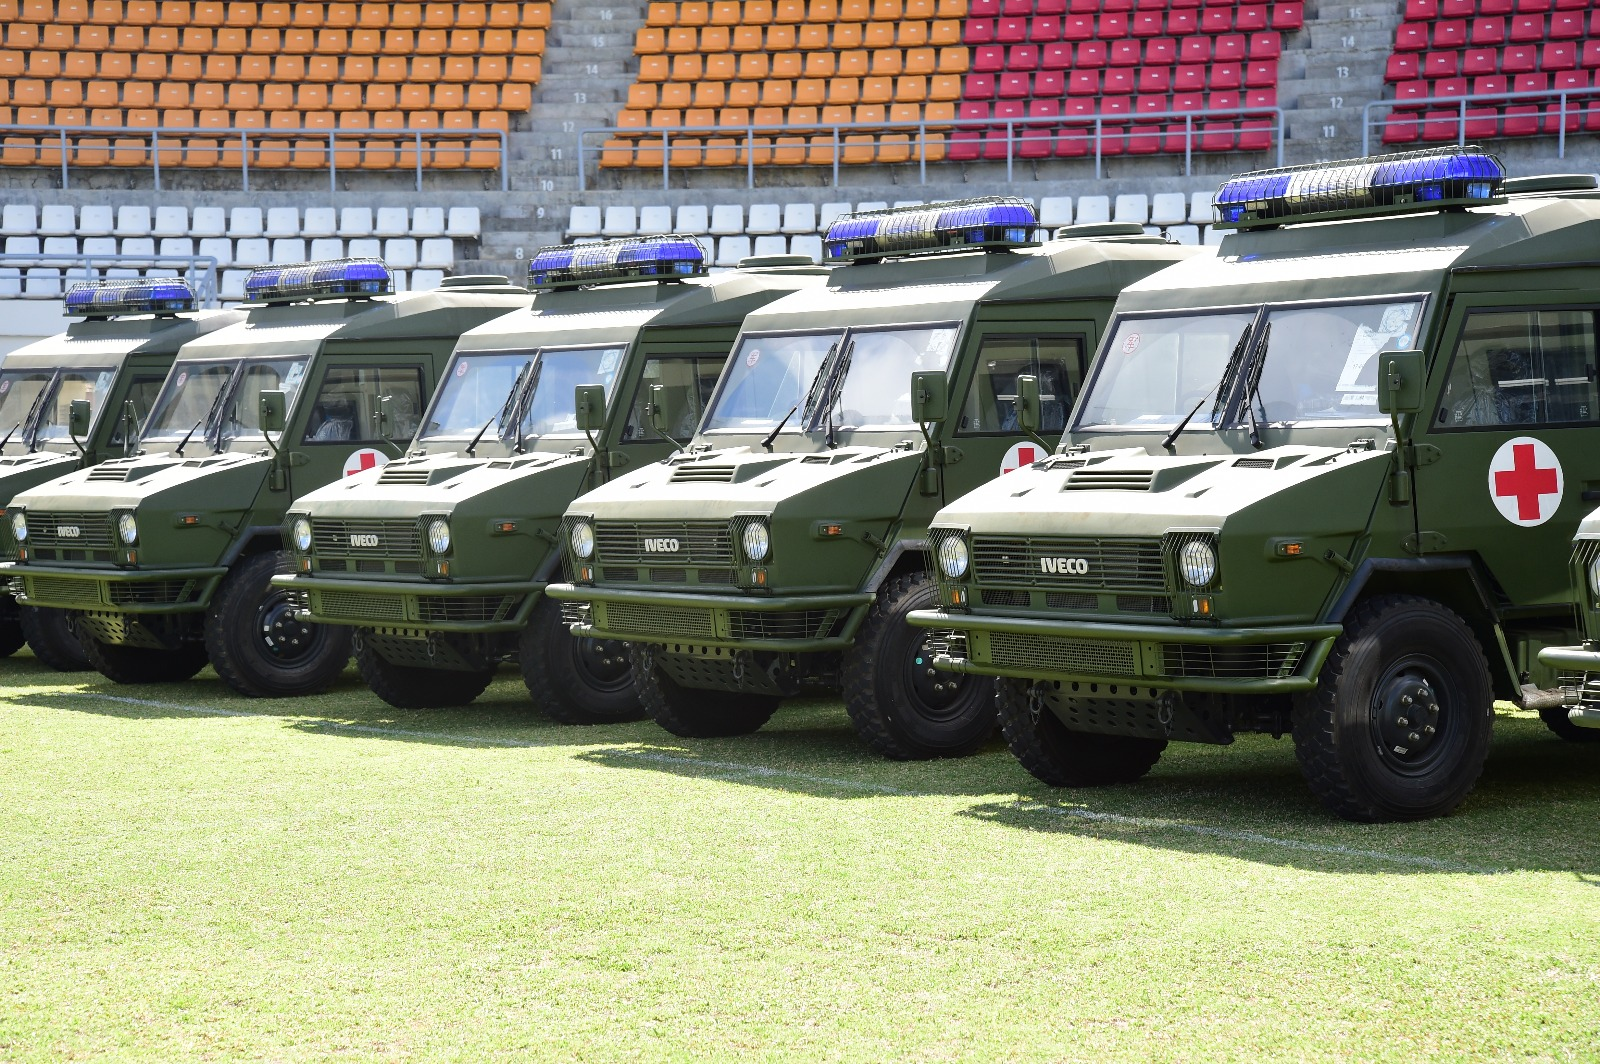 Chinese Government Donates 19 Military Vehicles And Accessories To The Government Of Dominica Kairi Fm